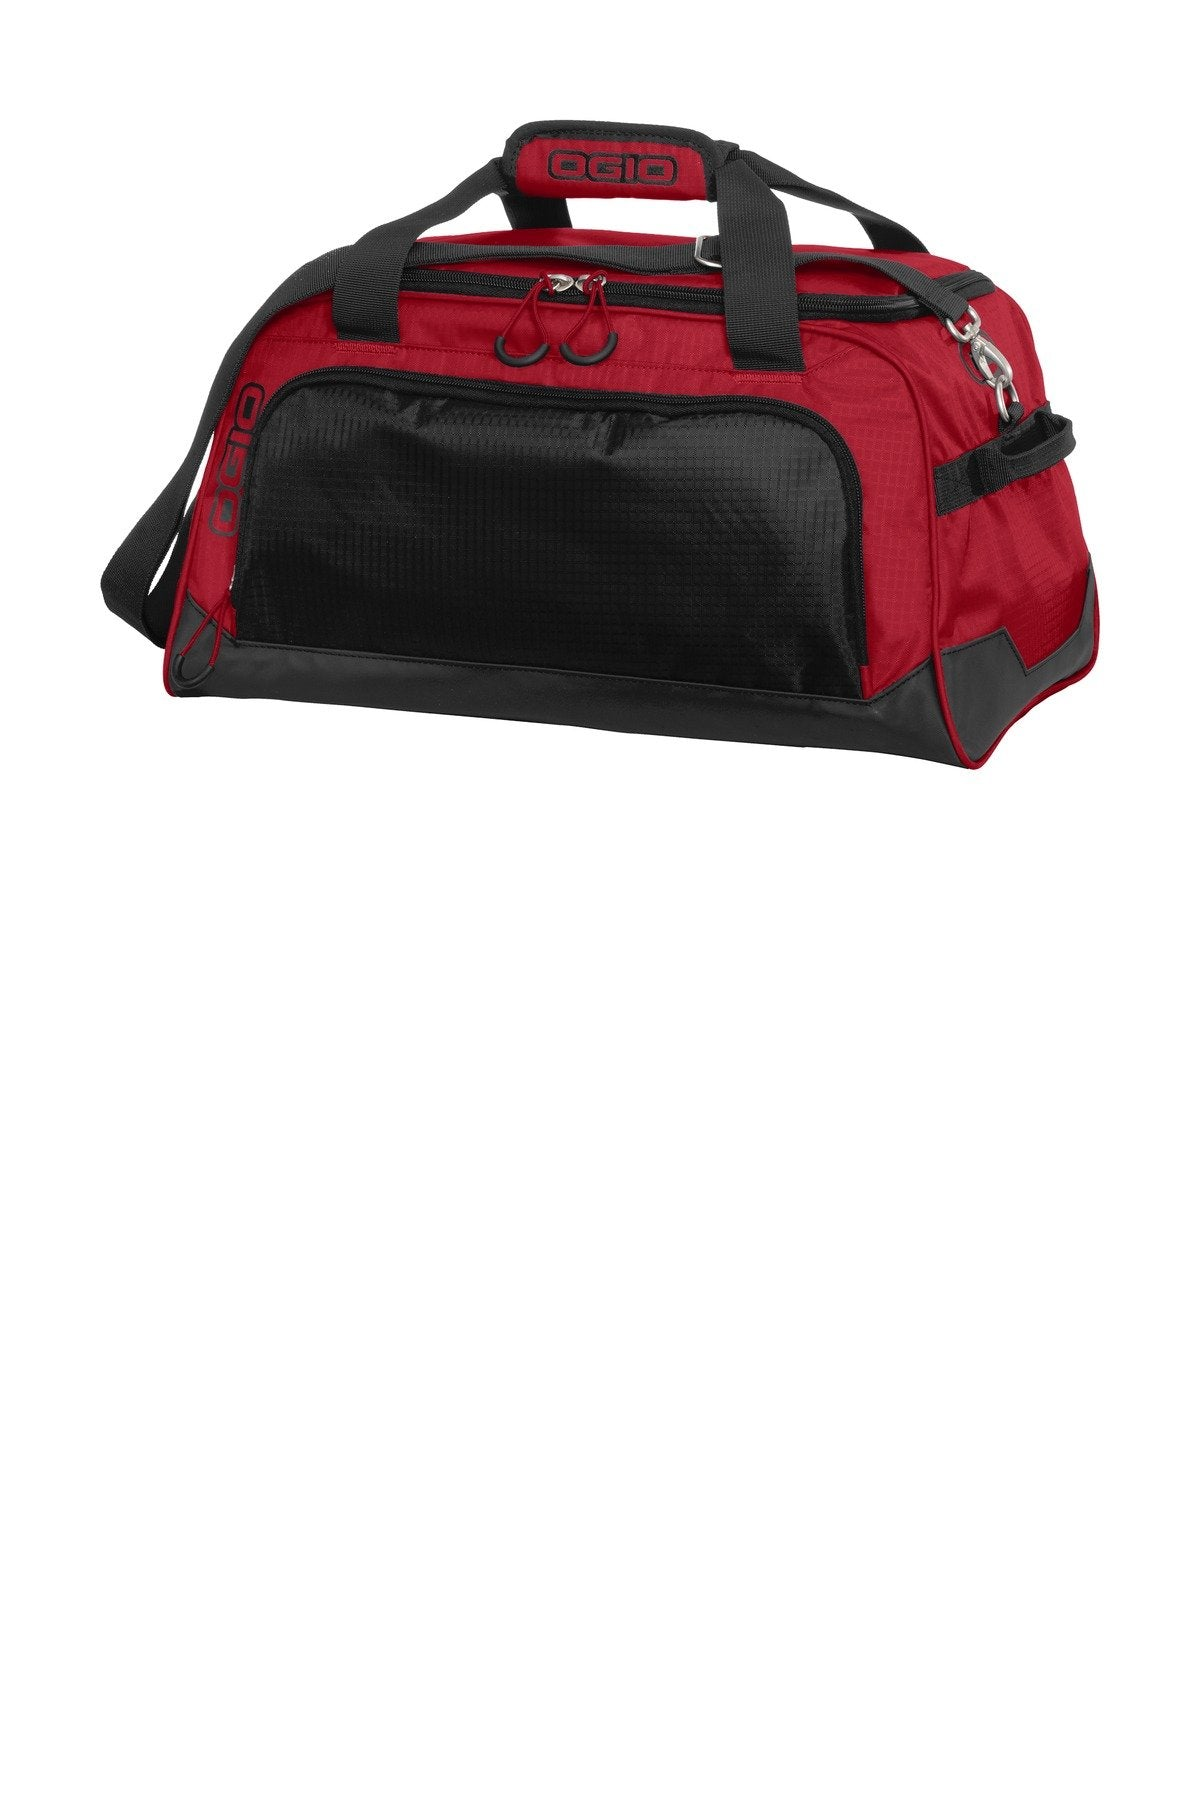 Ripped Red/ Black - OGIO 411095